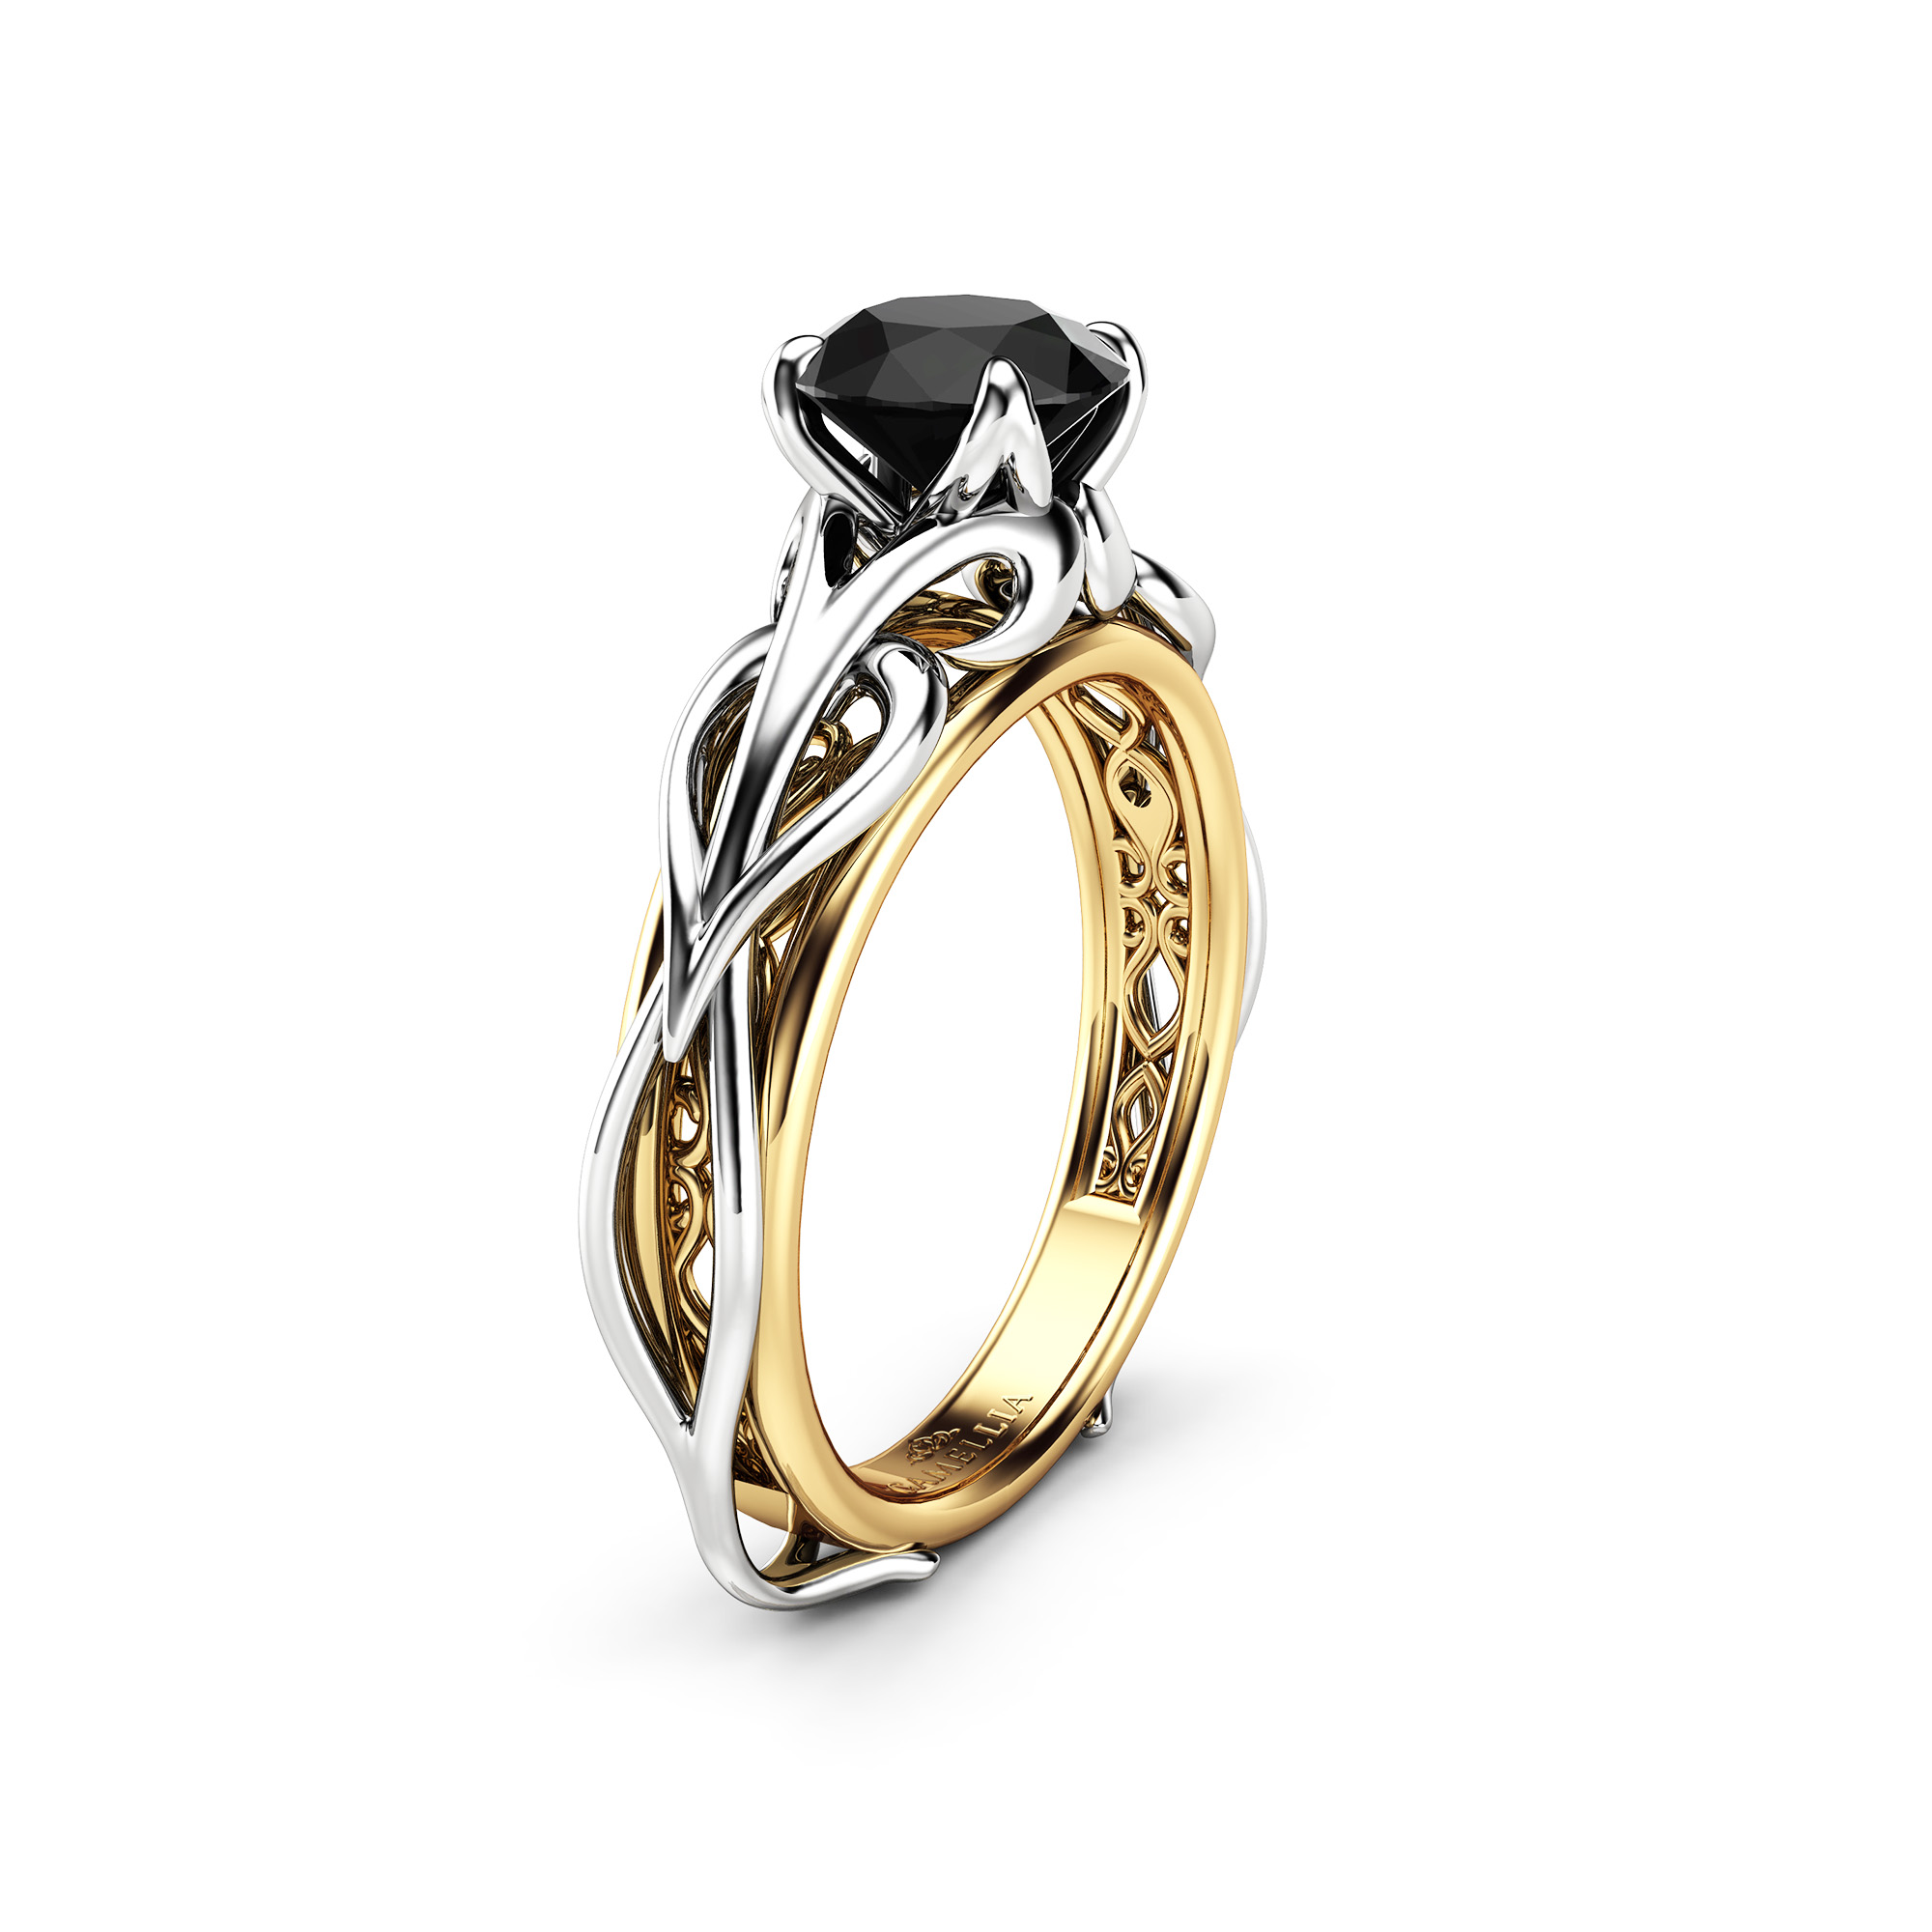 Unique Solitaire Black Diamond Engagement Ring 14K Two Tone Gold Diamond Ring Swirl Design Engagement Ring